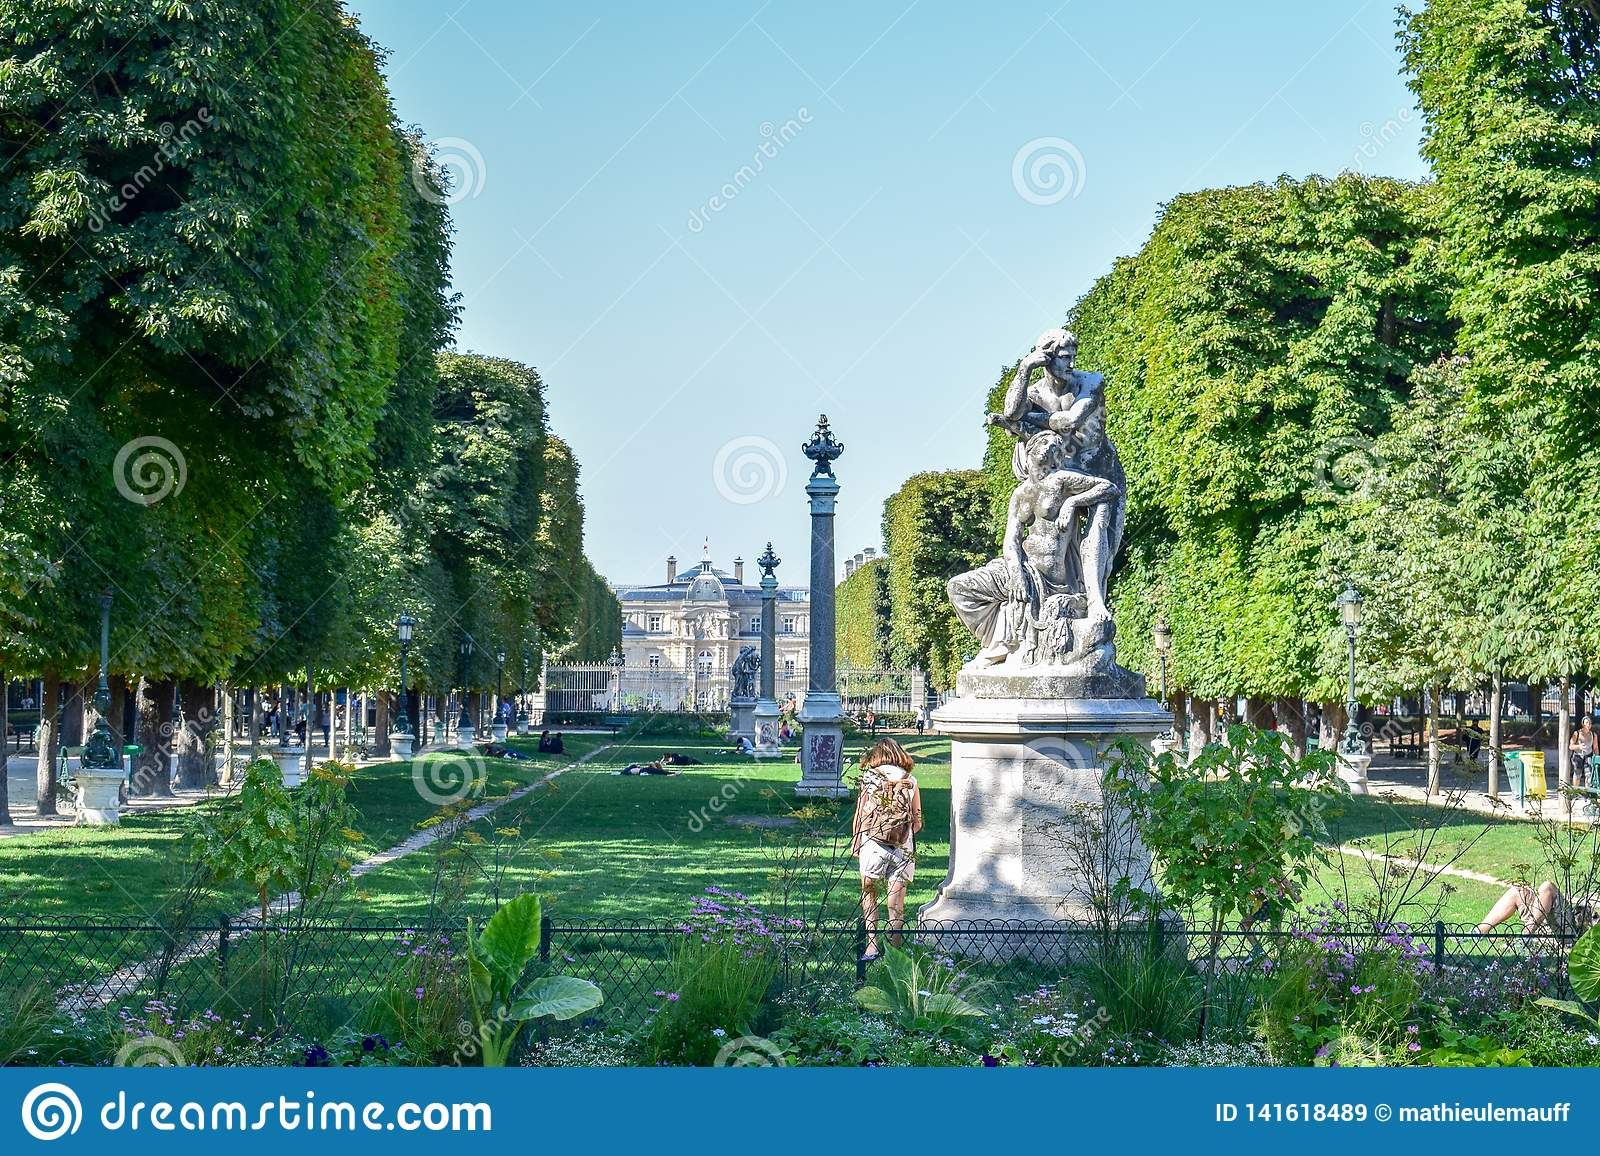 Paris Luxembourg Palace and Gardens in Summer